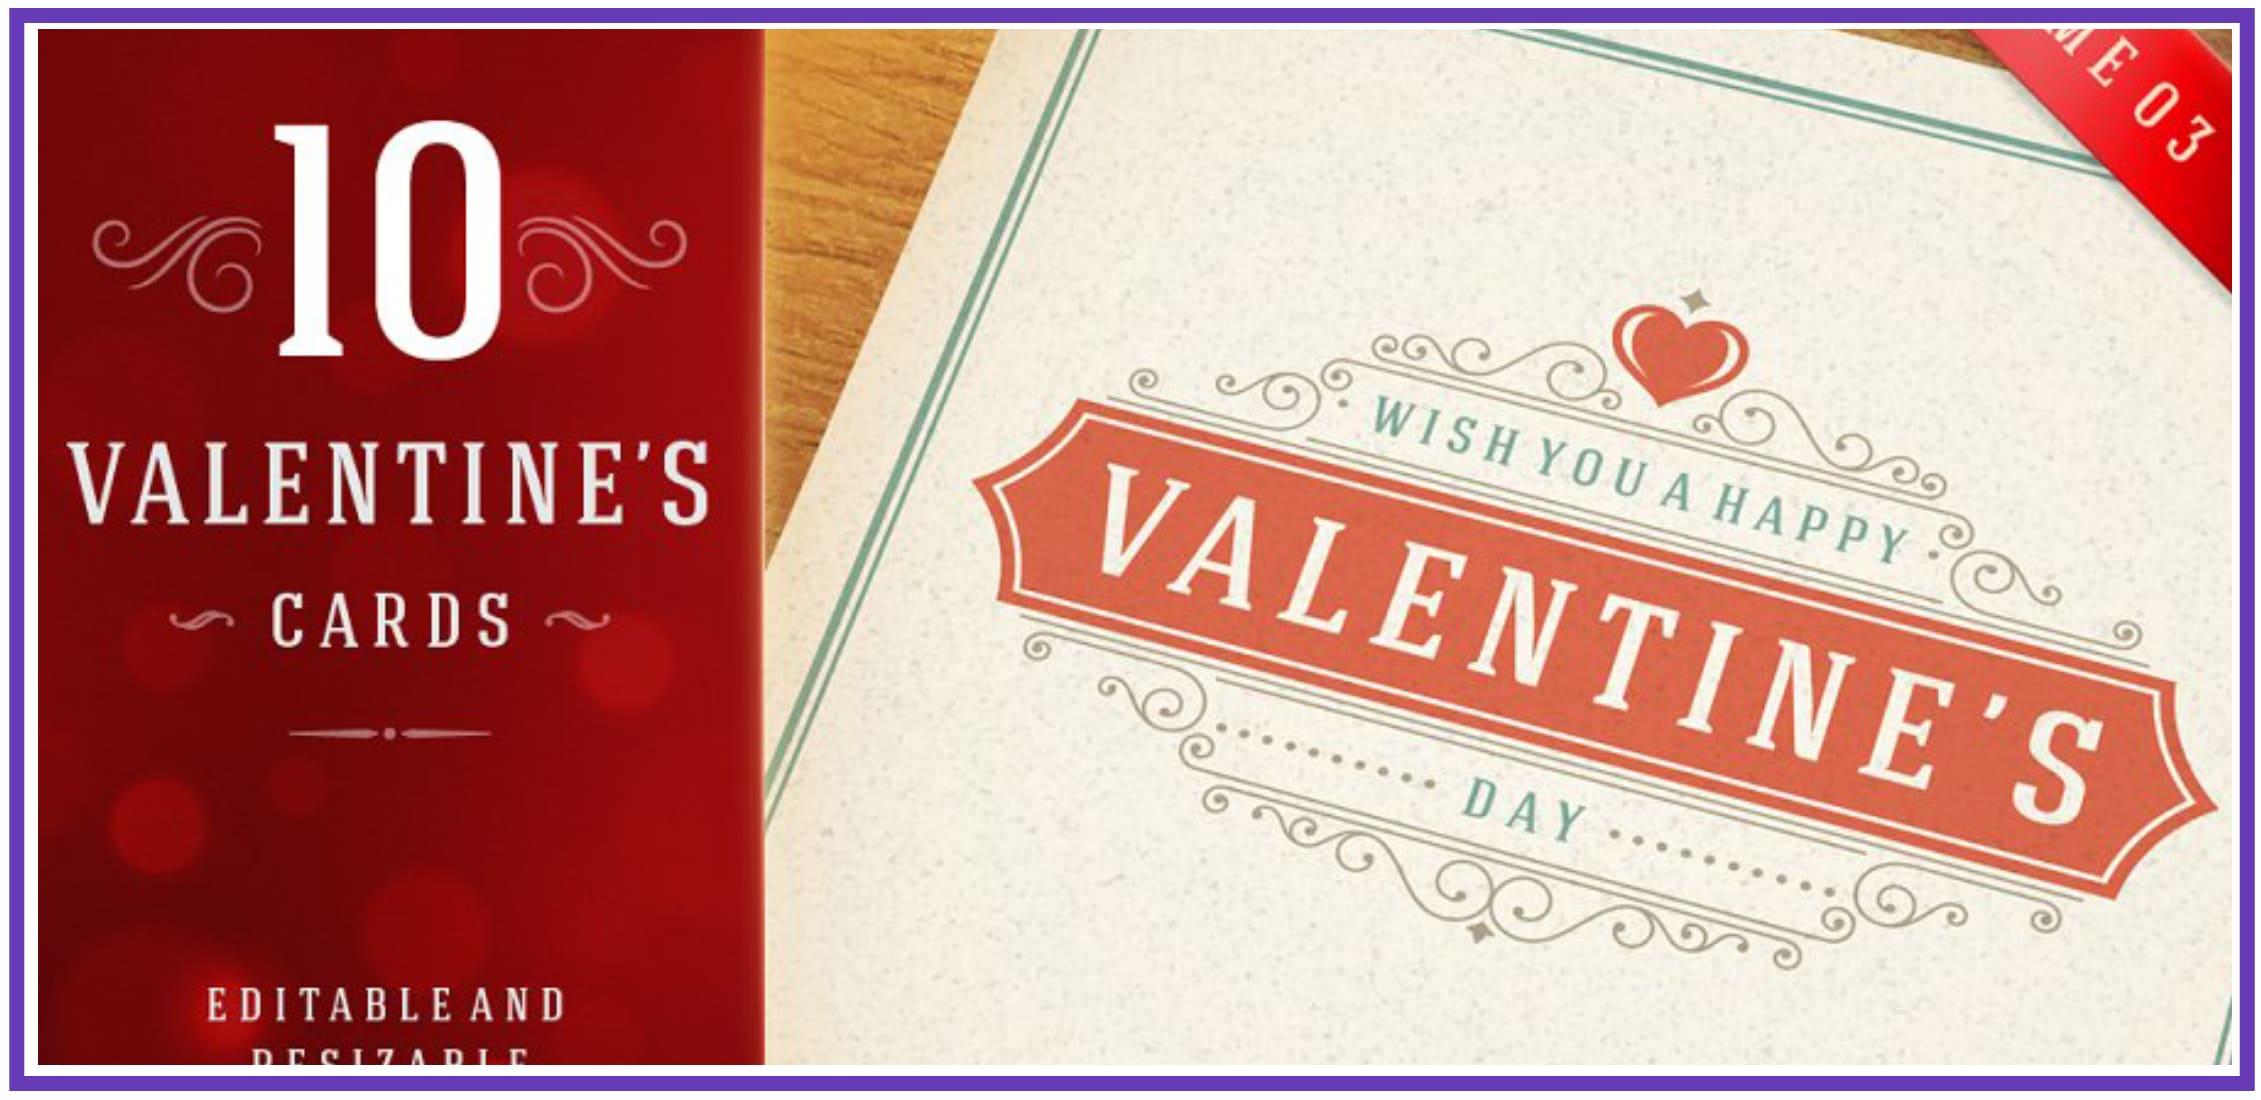 70+ Valentine's Day Cards 2021. Do not Forget about a Heartfelt Card for Your Valentine - valentines day card 33